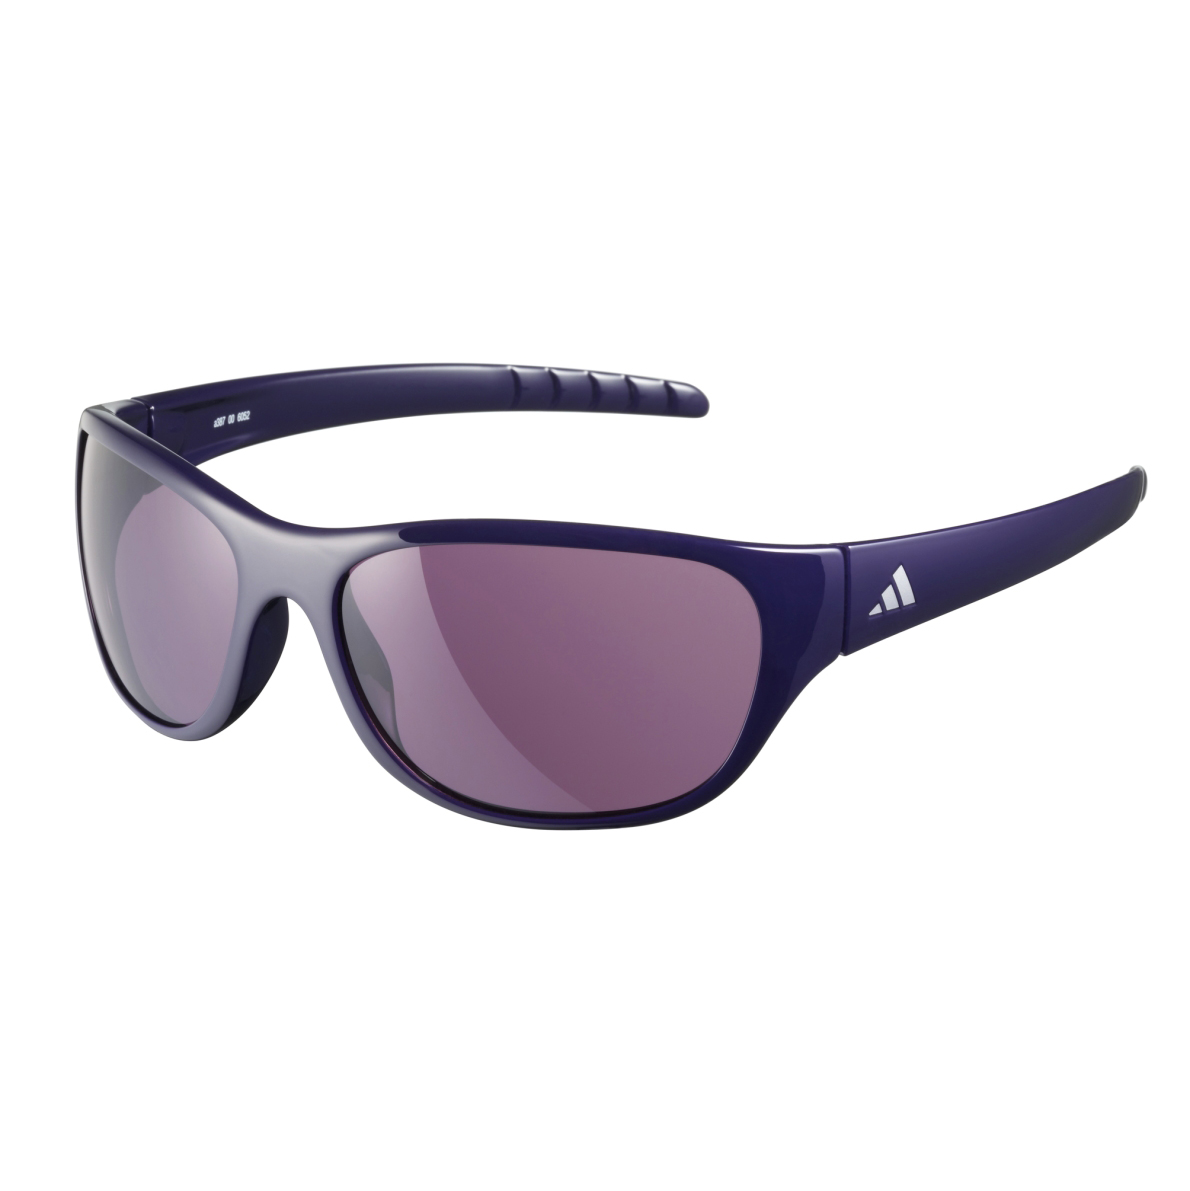 Adidas Kasoto Sunglasses - Plum Purple